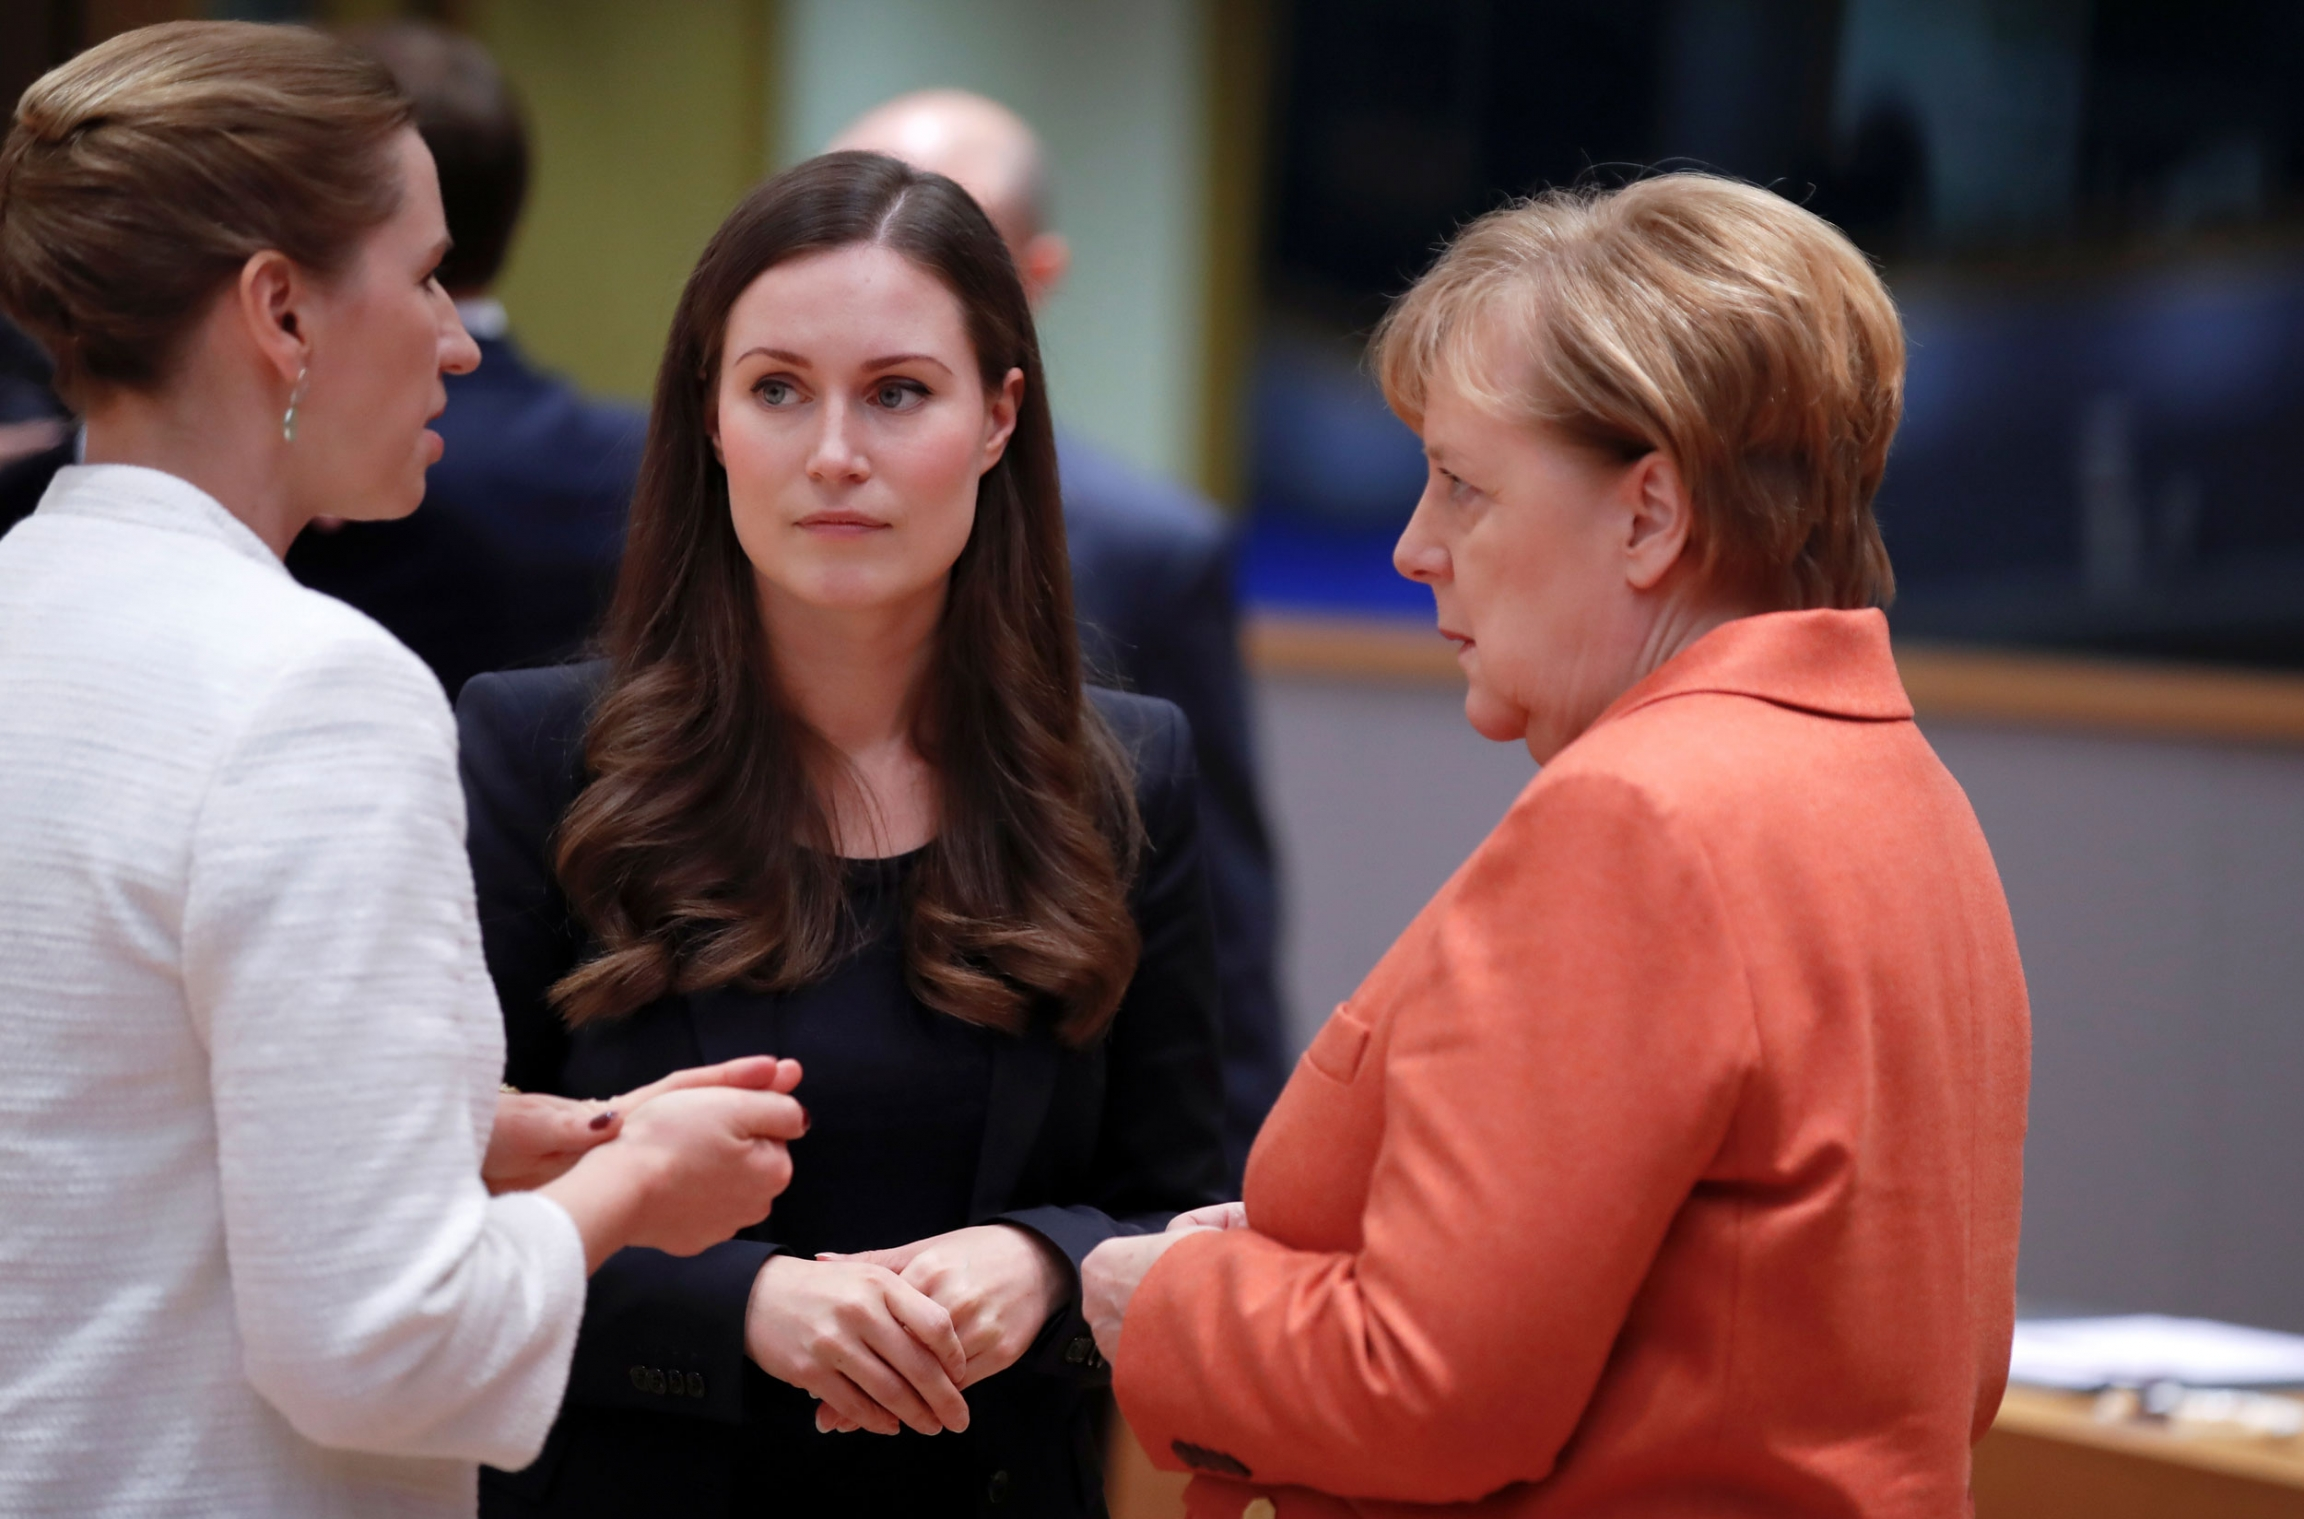 German Chancellor Angela Merkel, Finland's Prime Minister Sanna Marin and Denmark's Prime Minister Mette Frederiksen are shown standing, facing each other and talking.